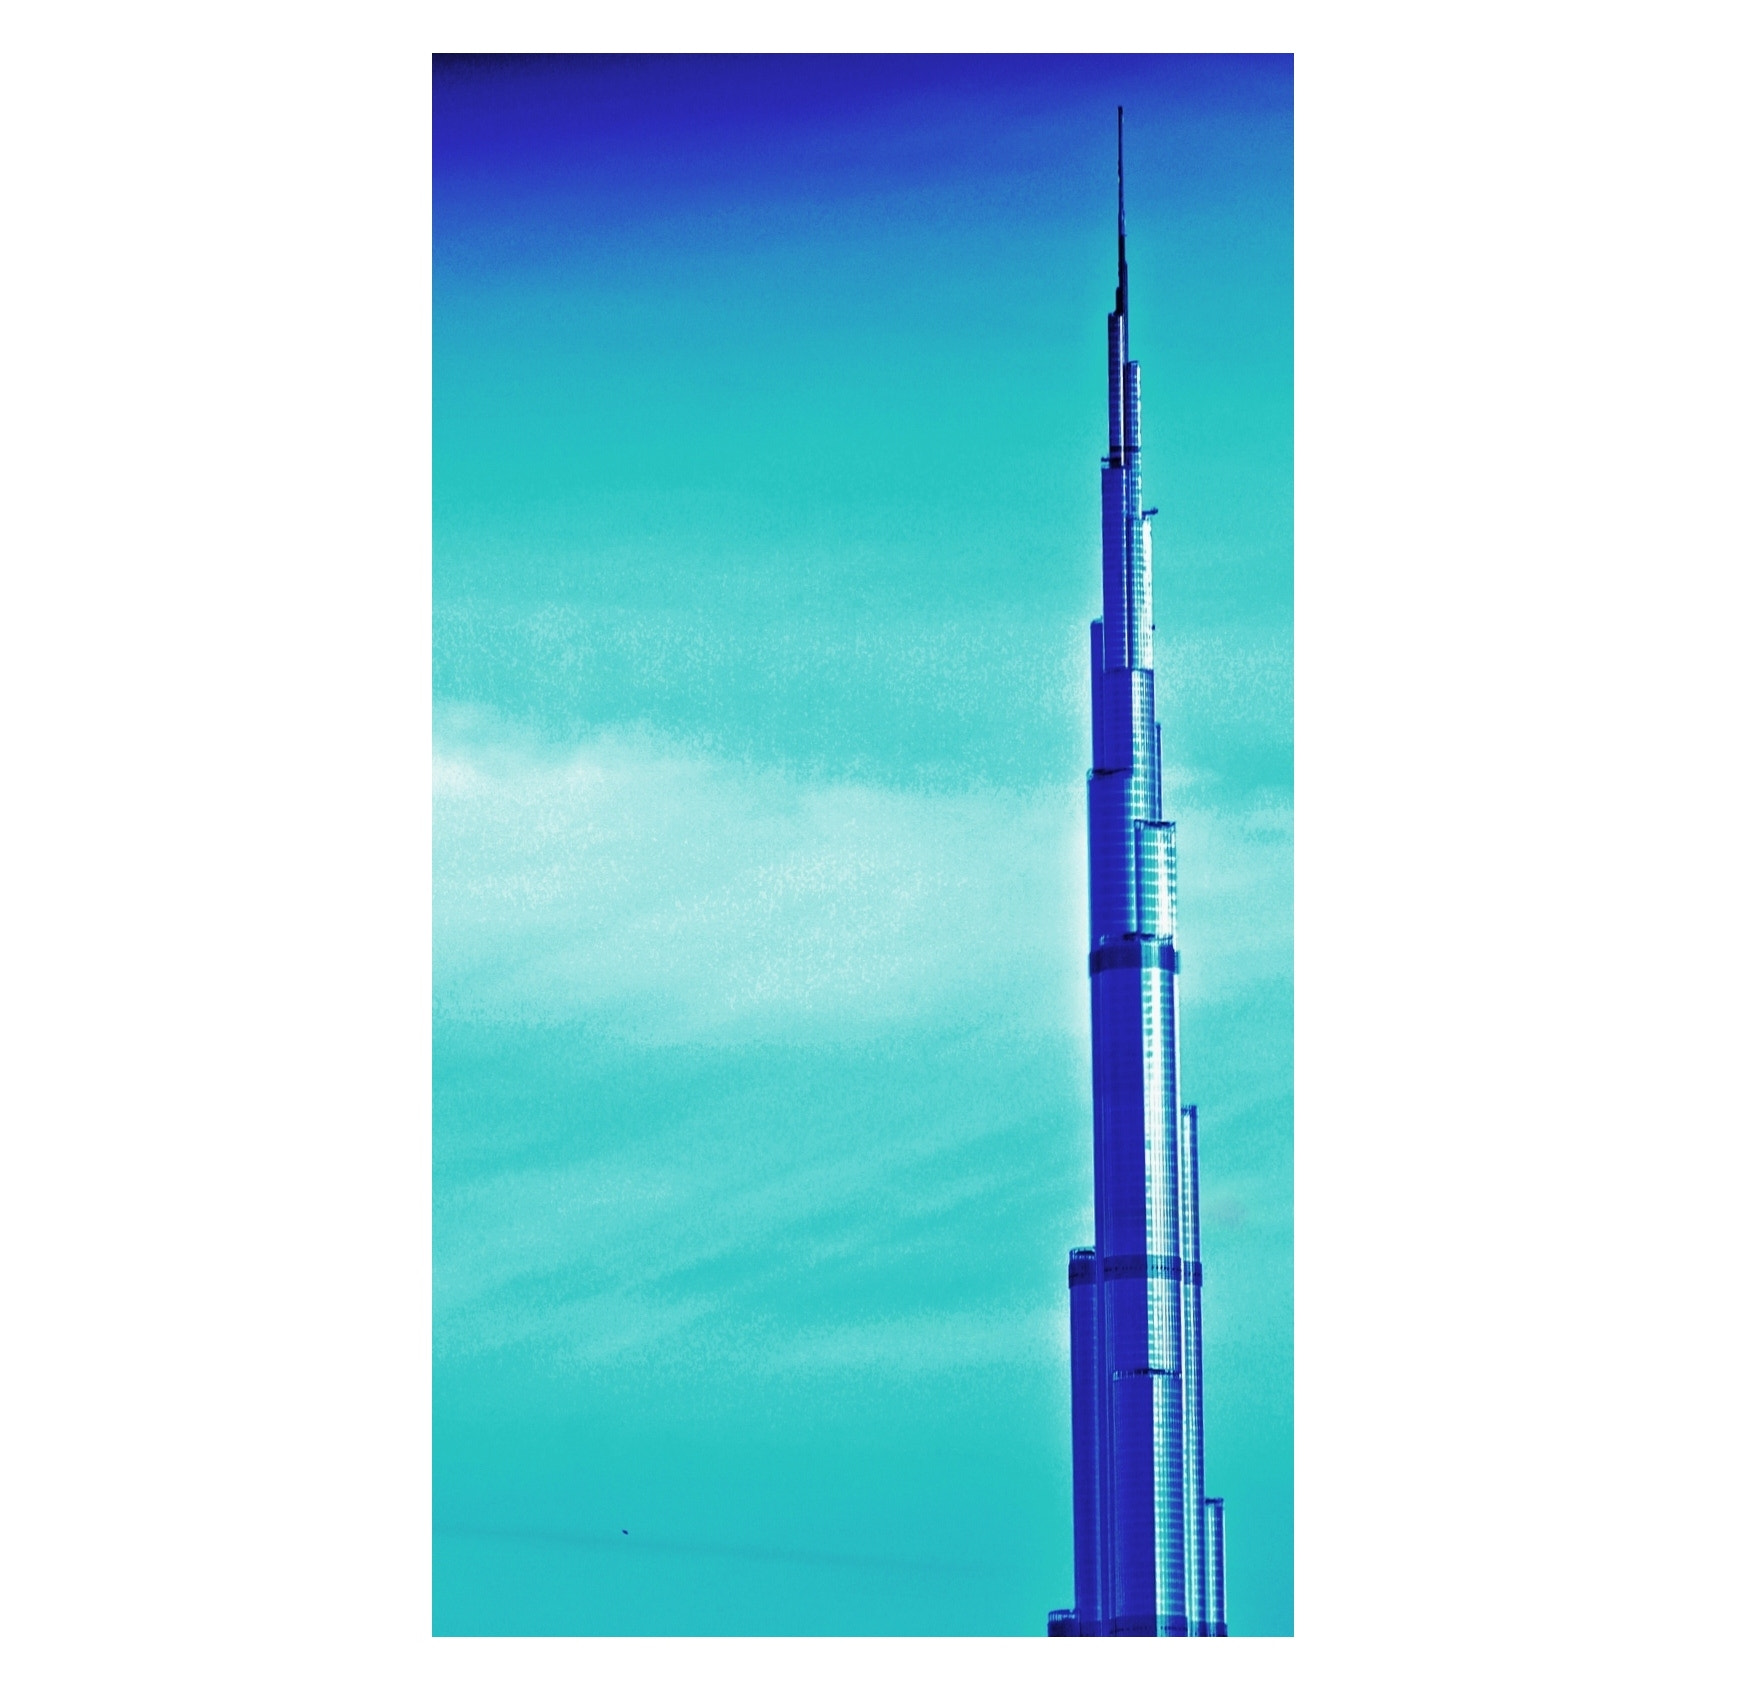 Photograph burj khalifa by Abdulla  Rasti on 500px